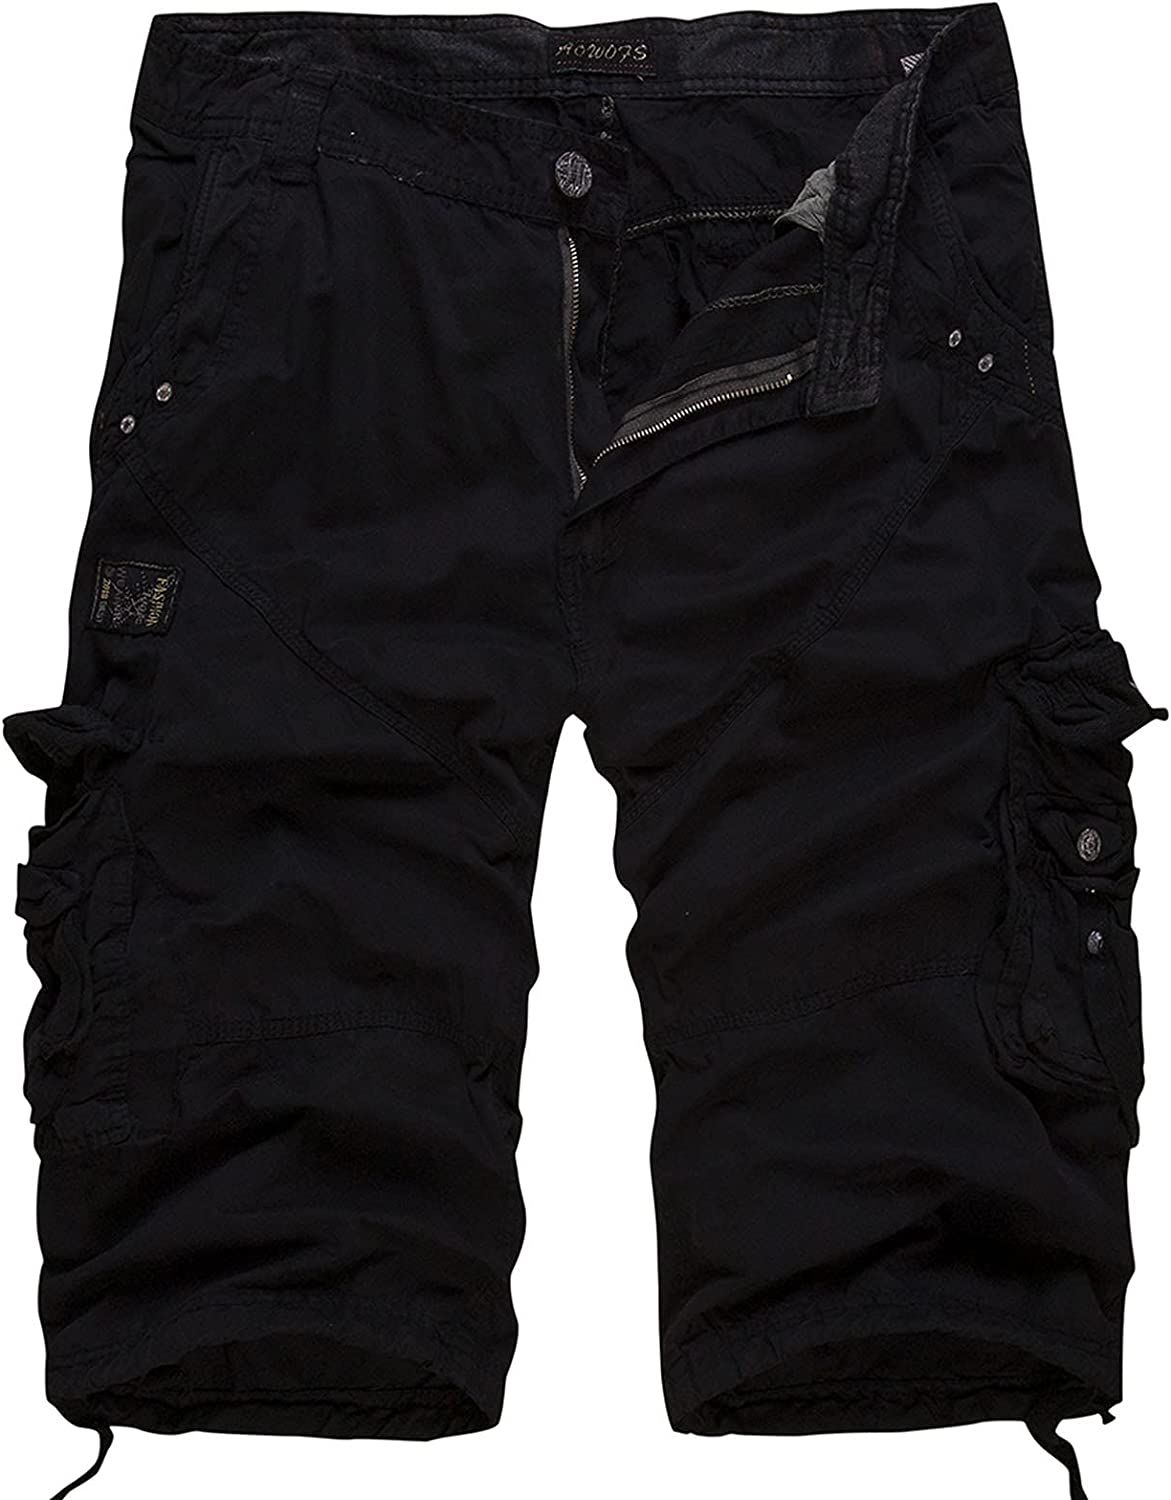 XiAn New Loose Large Size Cargo Shorts Cotton Men Casual Solid Color Patchwork Military White Knee Length